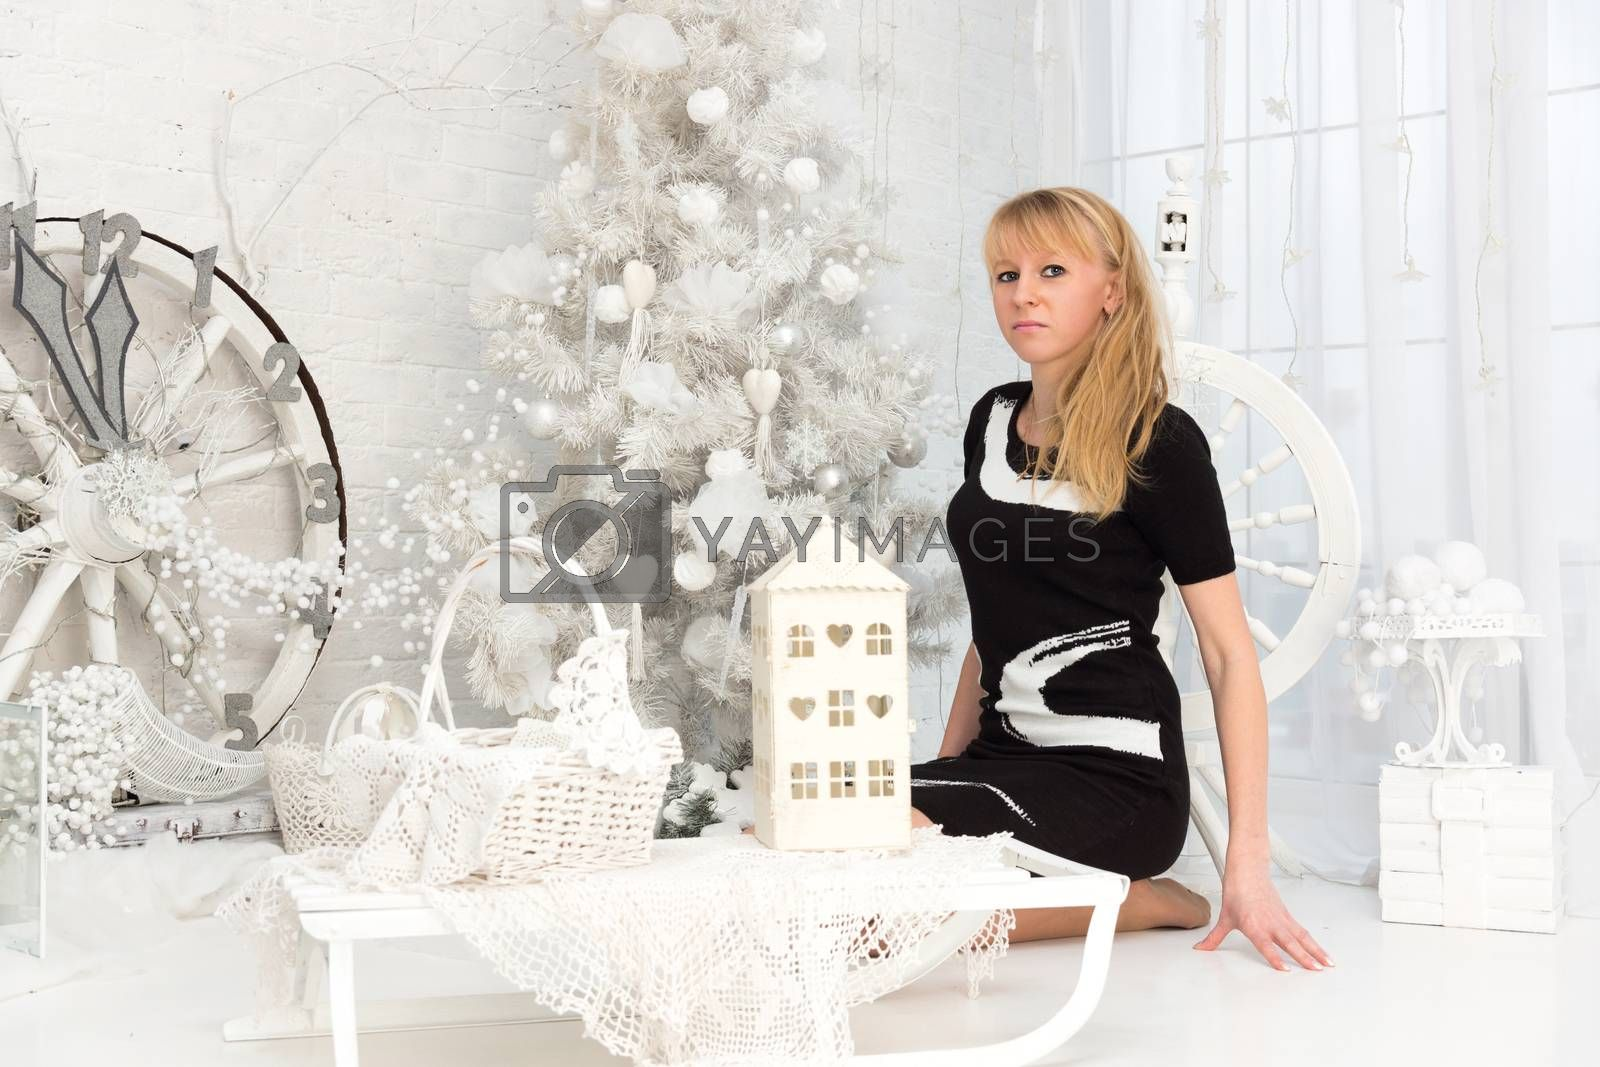 The photo shows a girl sitting in front of Christmas tree